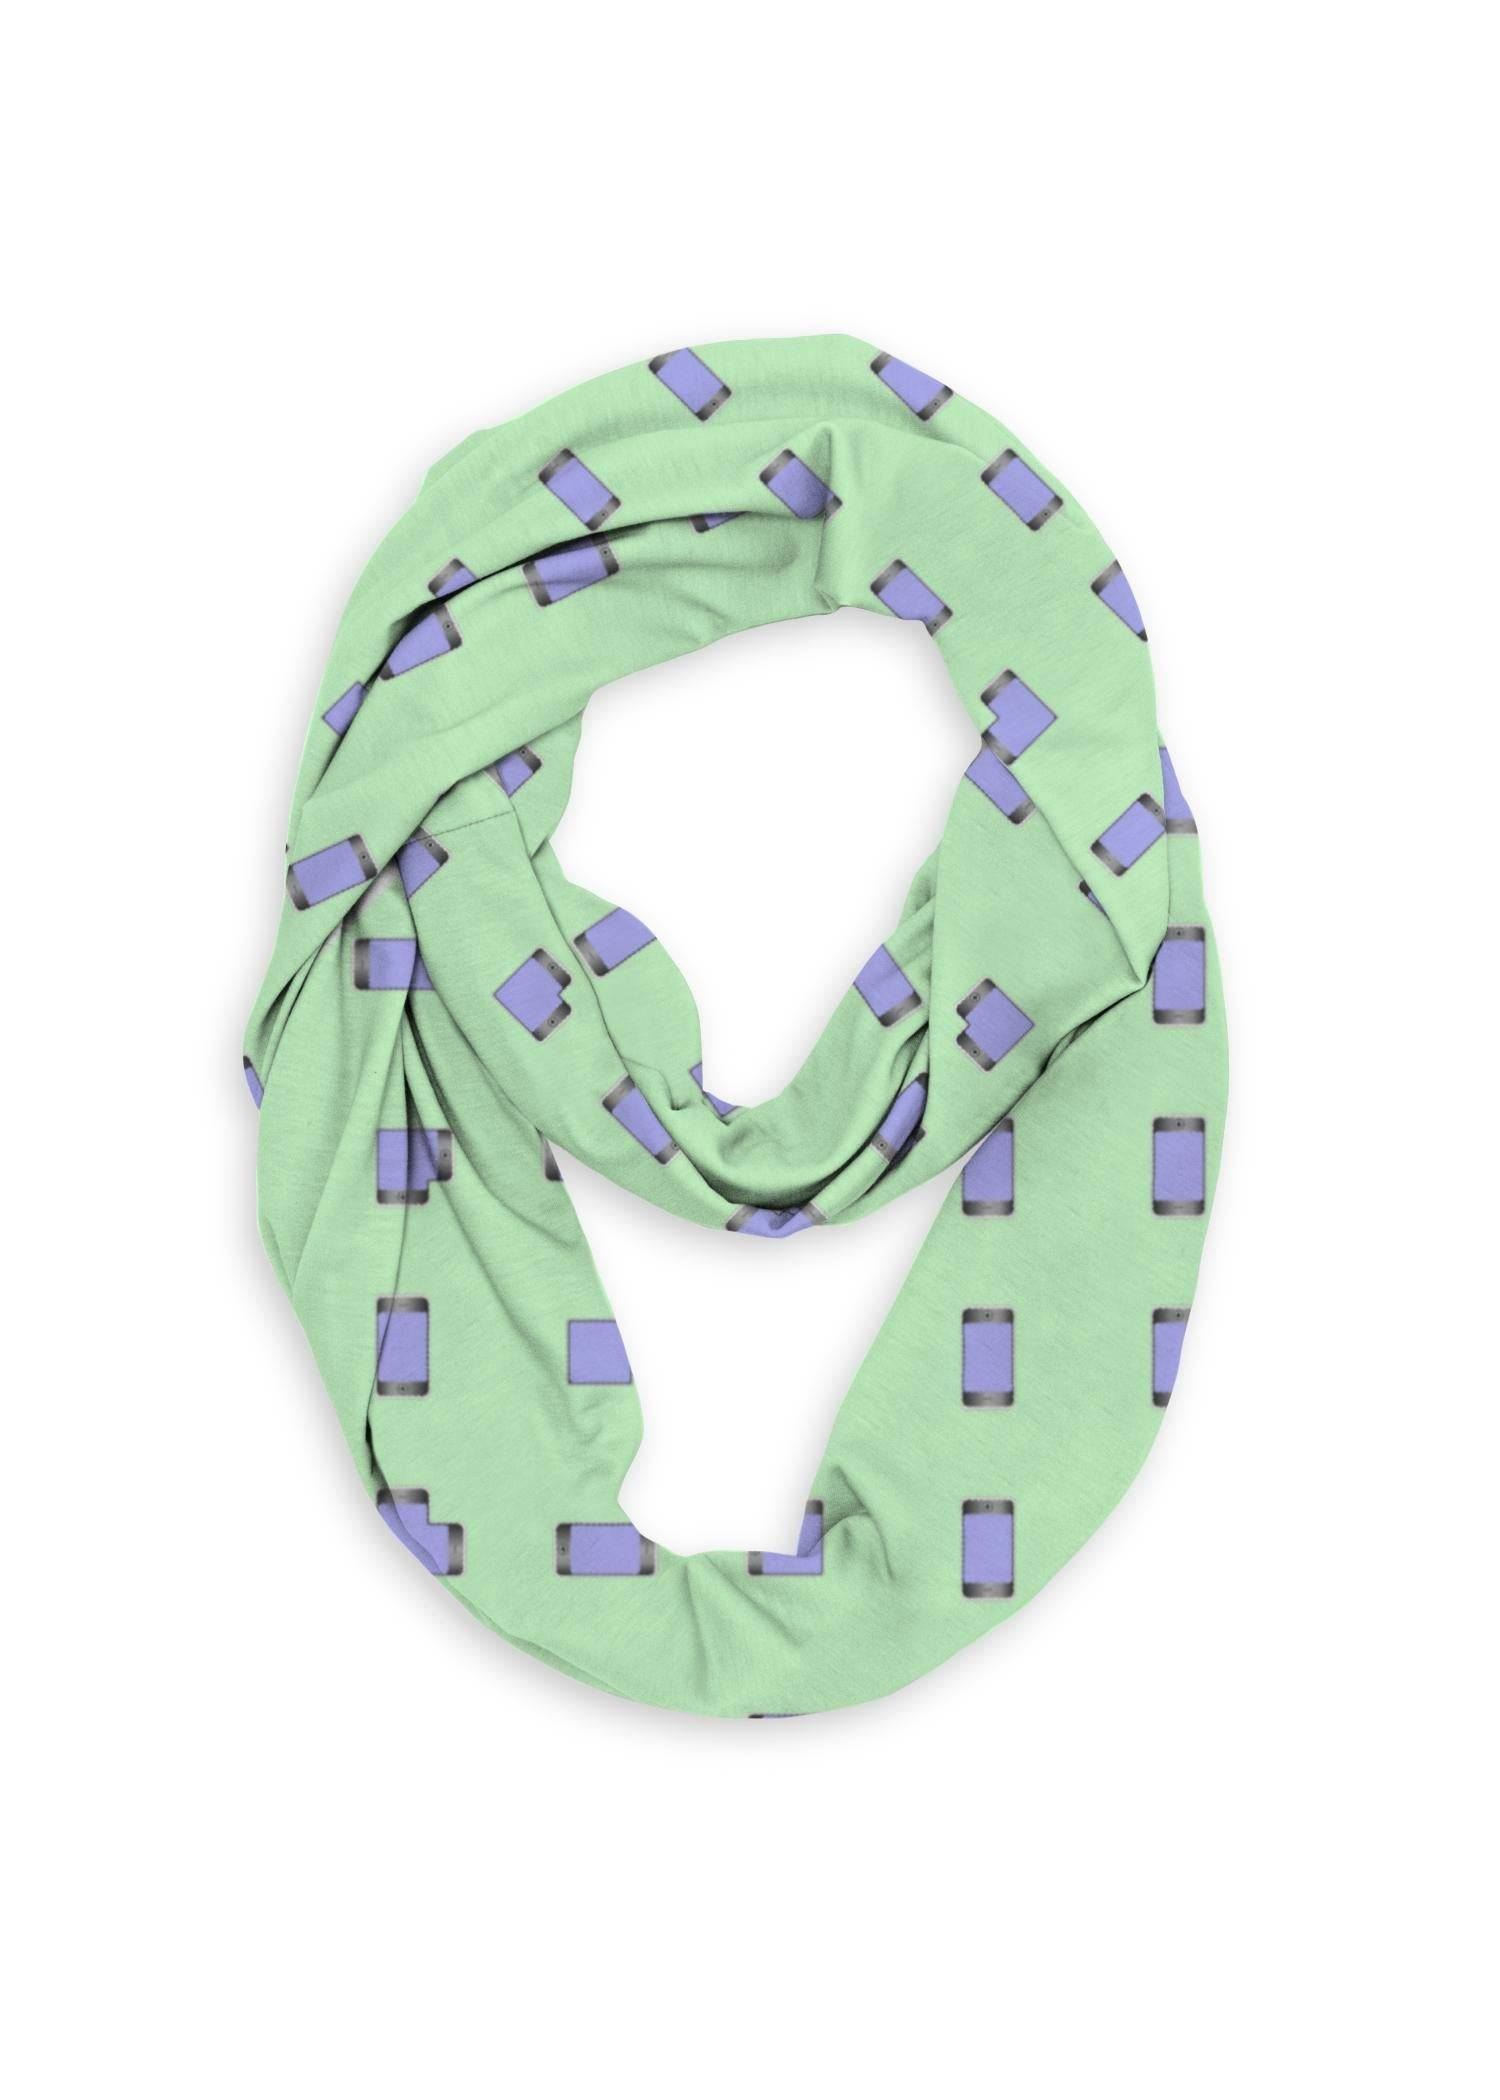 VIDA Infinity Eco Scarf - Mobile Phones On Green in Green by VIDA Original Artist  - Size: One Size